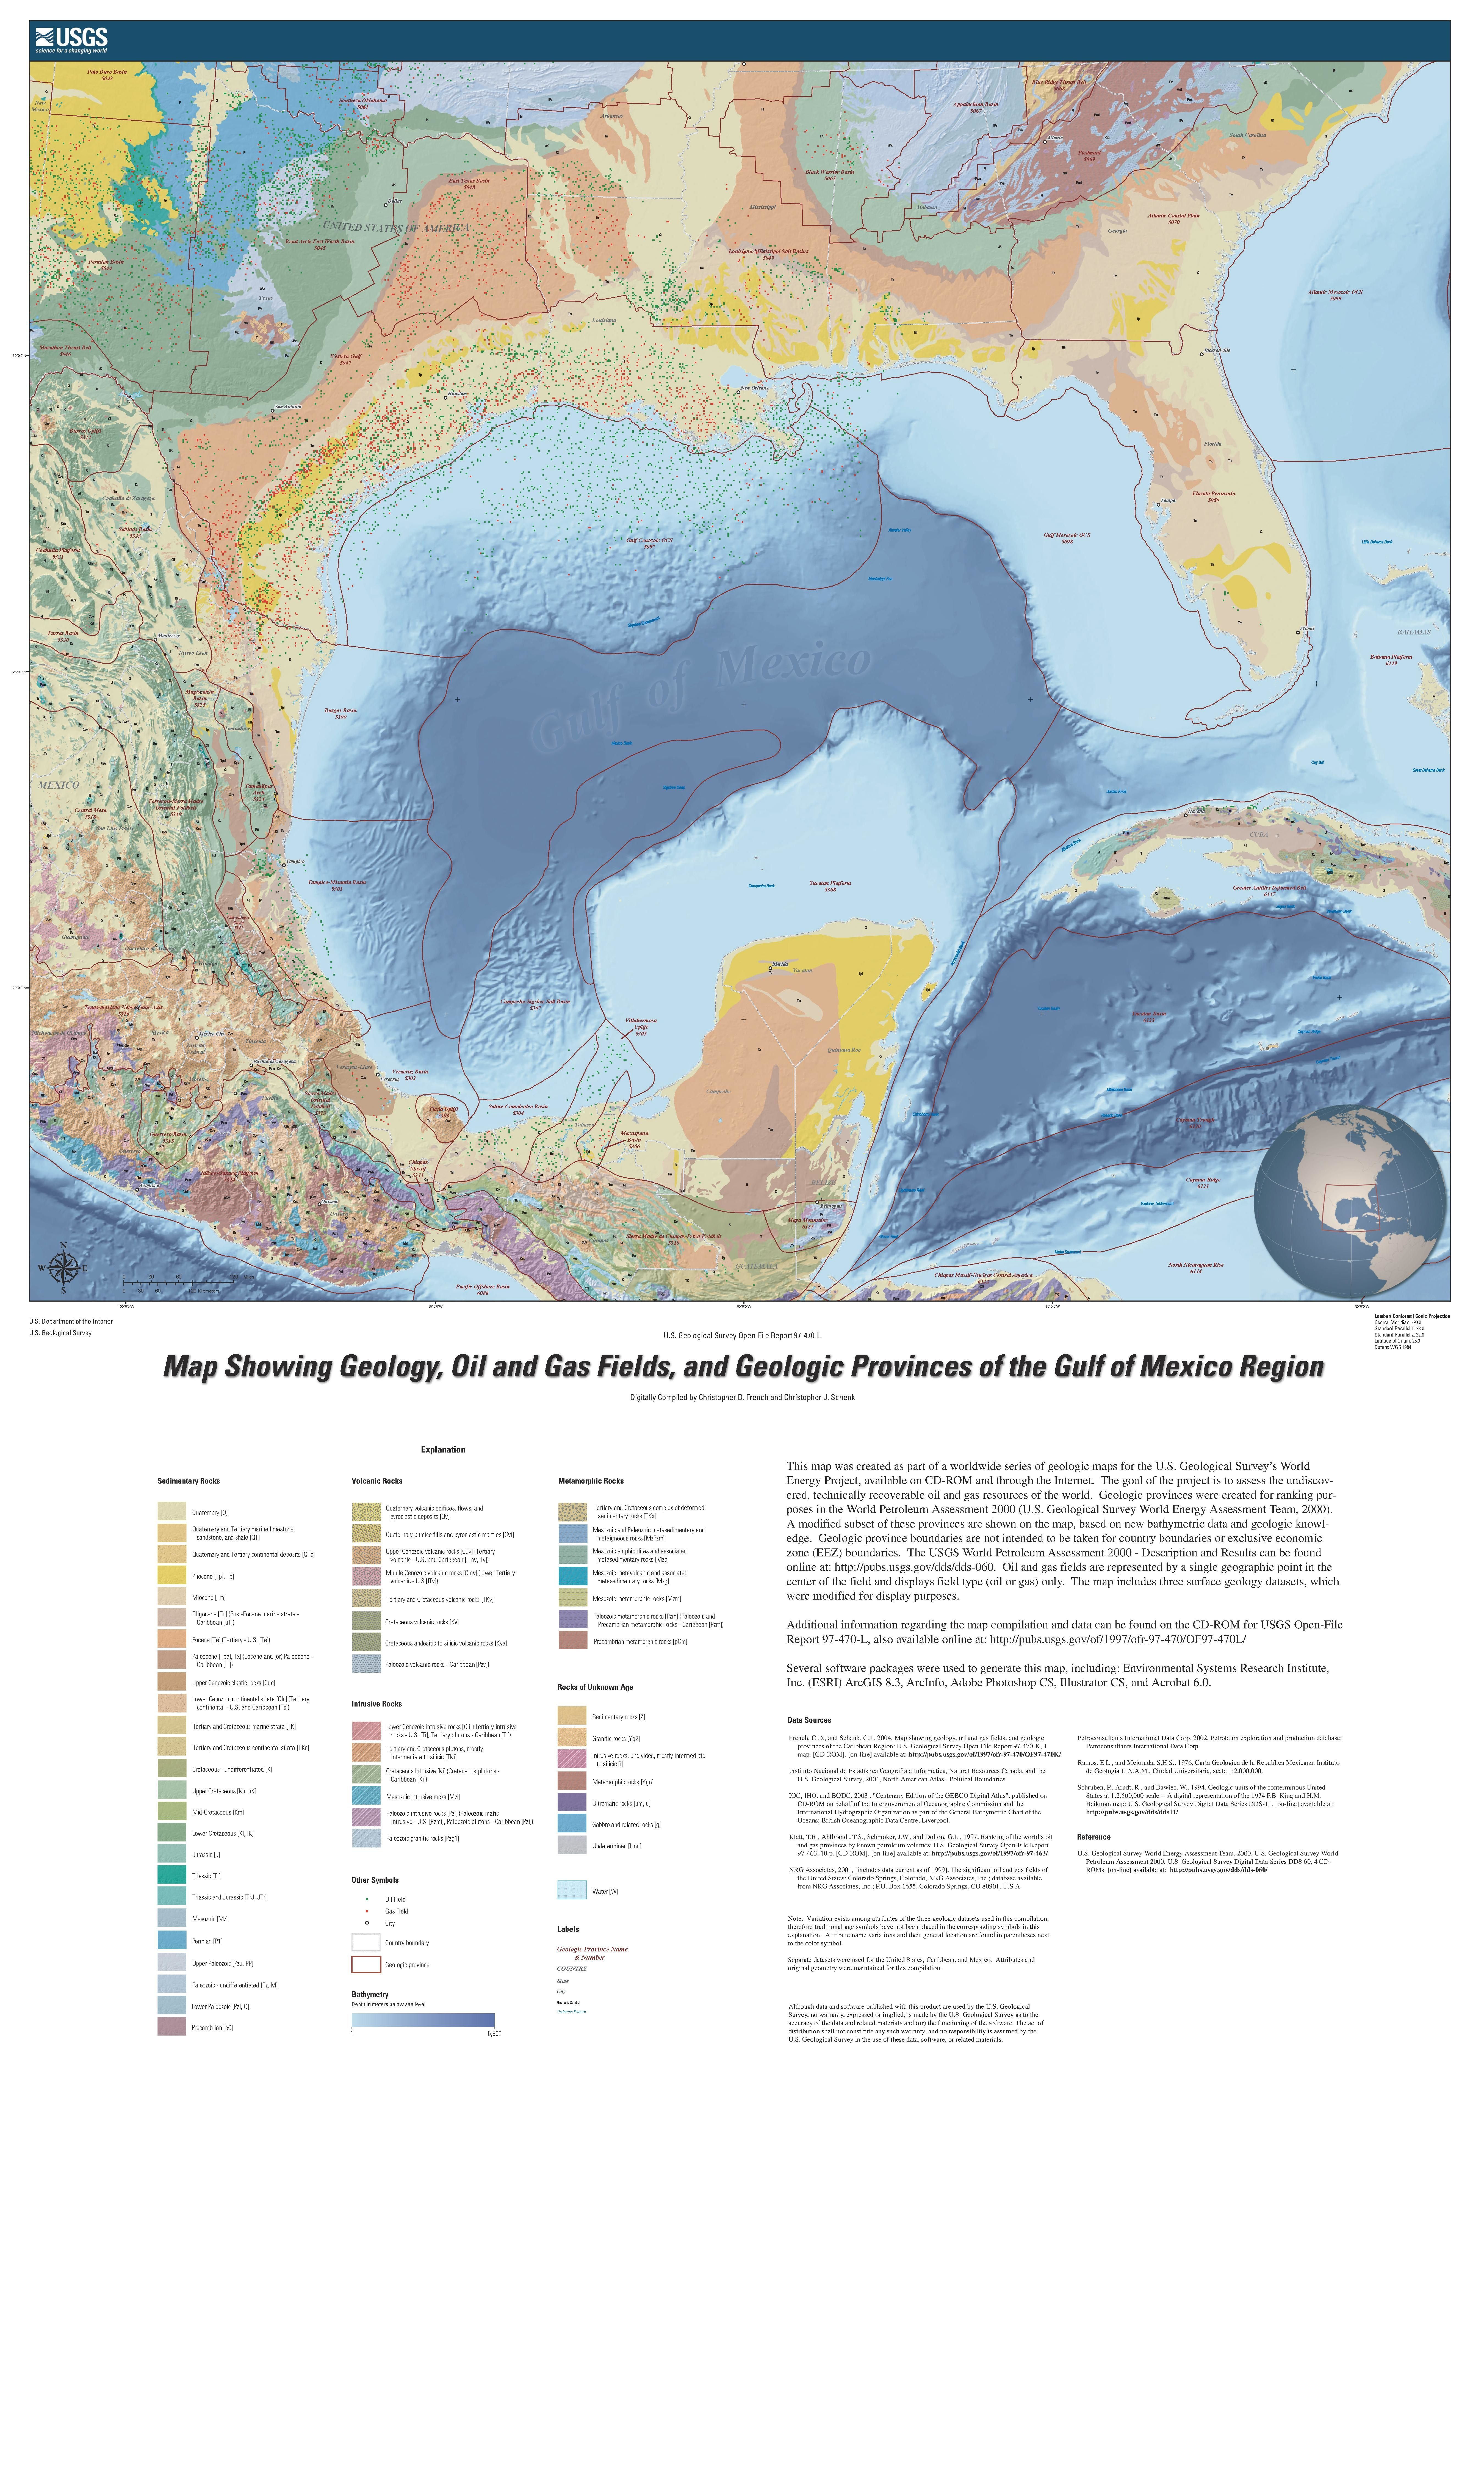 usgs geologic map of the gulf of mexico